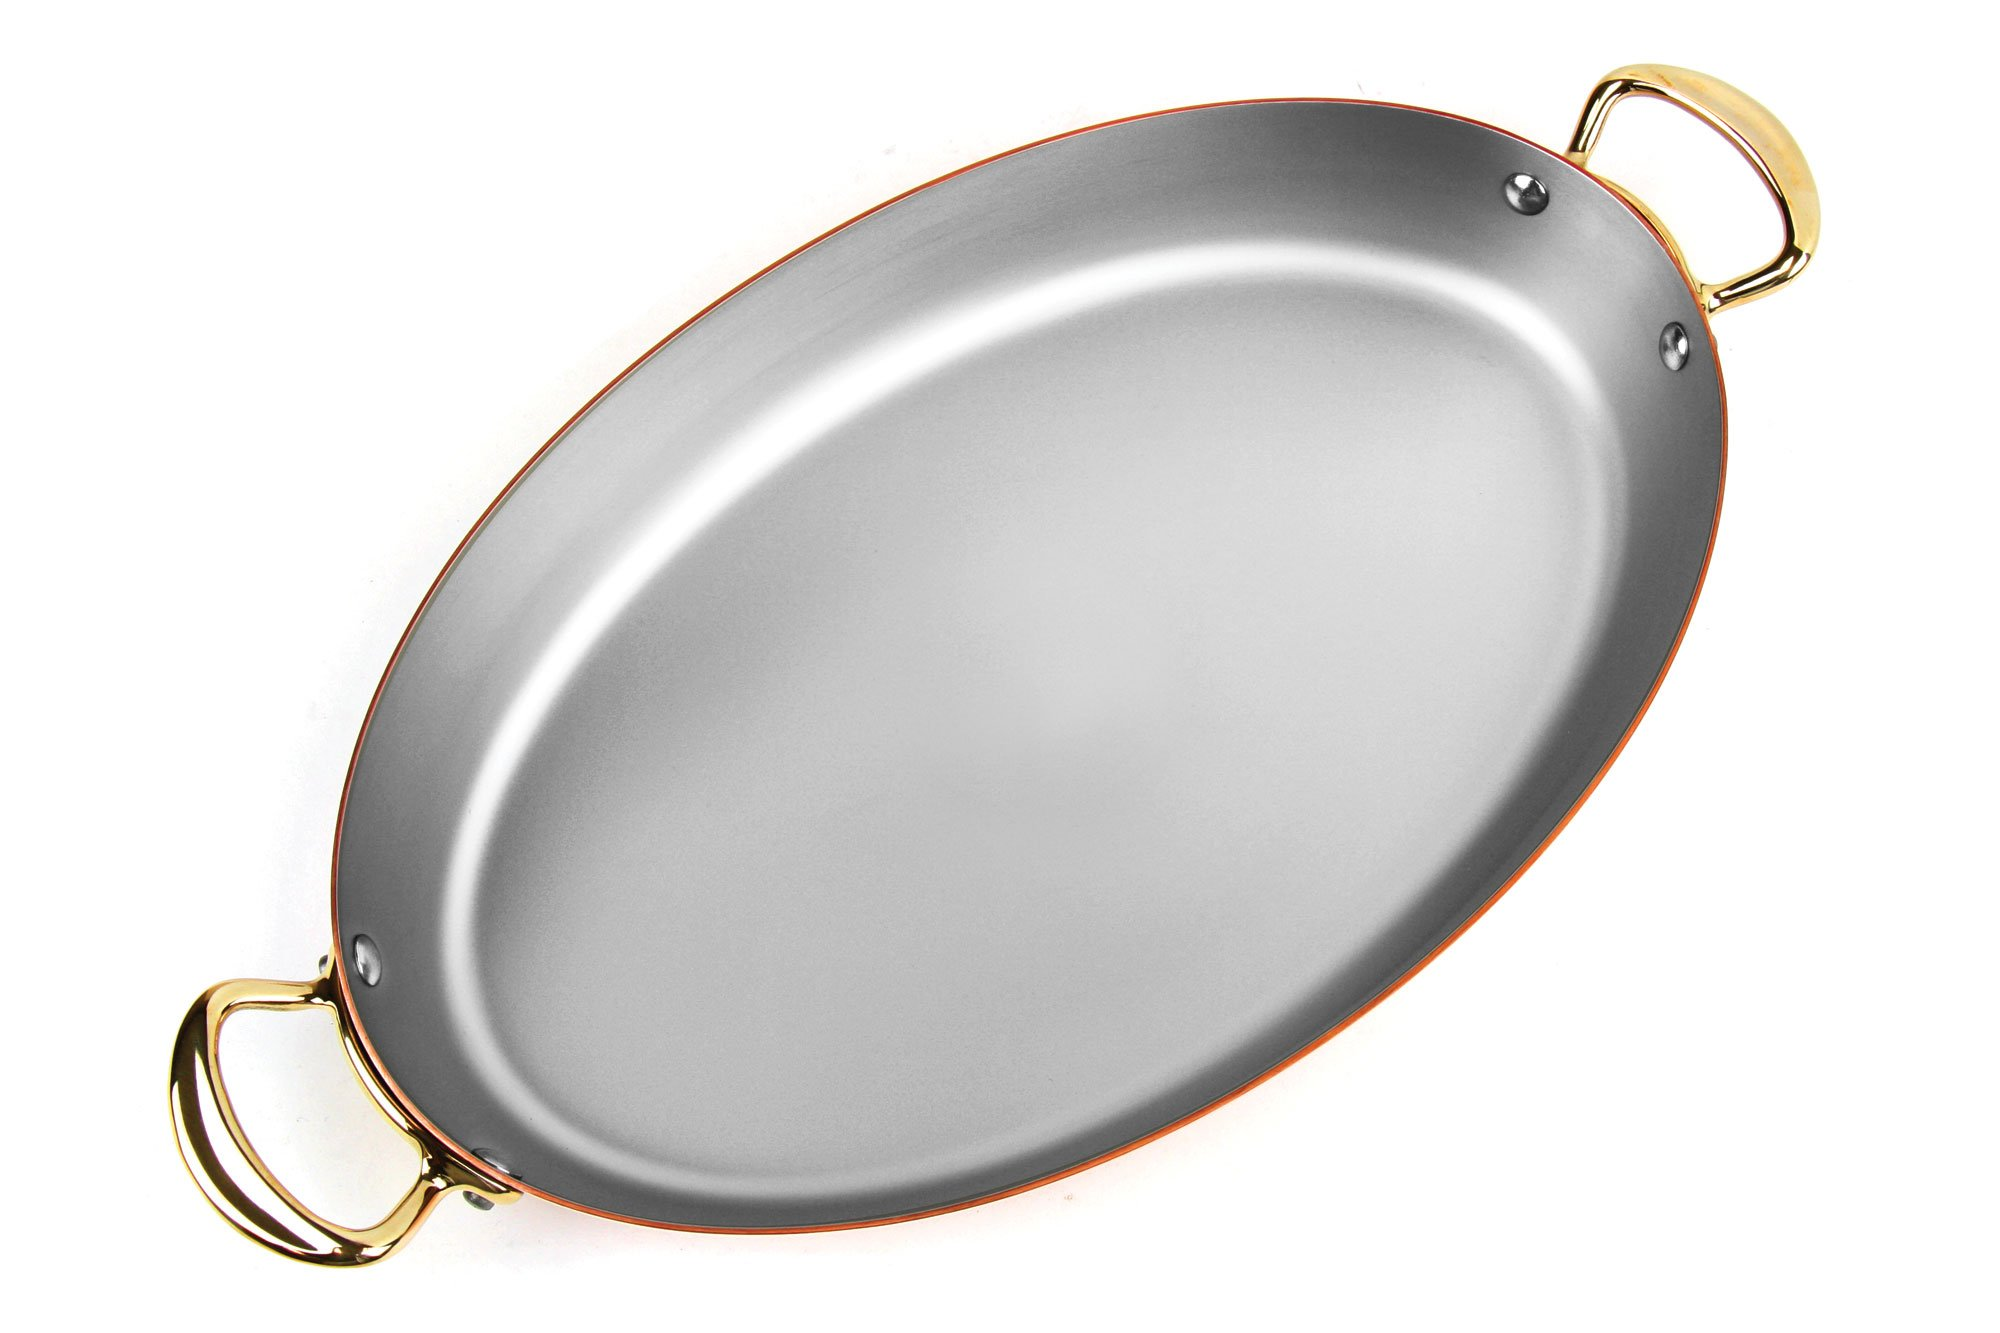 Mauviel 13.75 x 1.75-inch Copper Oval Au Gratin Pan with Bronze Handles by Mauviel (Image #3)